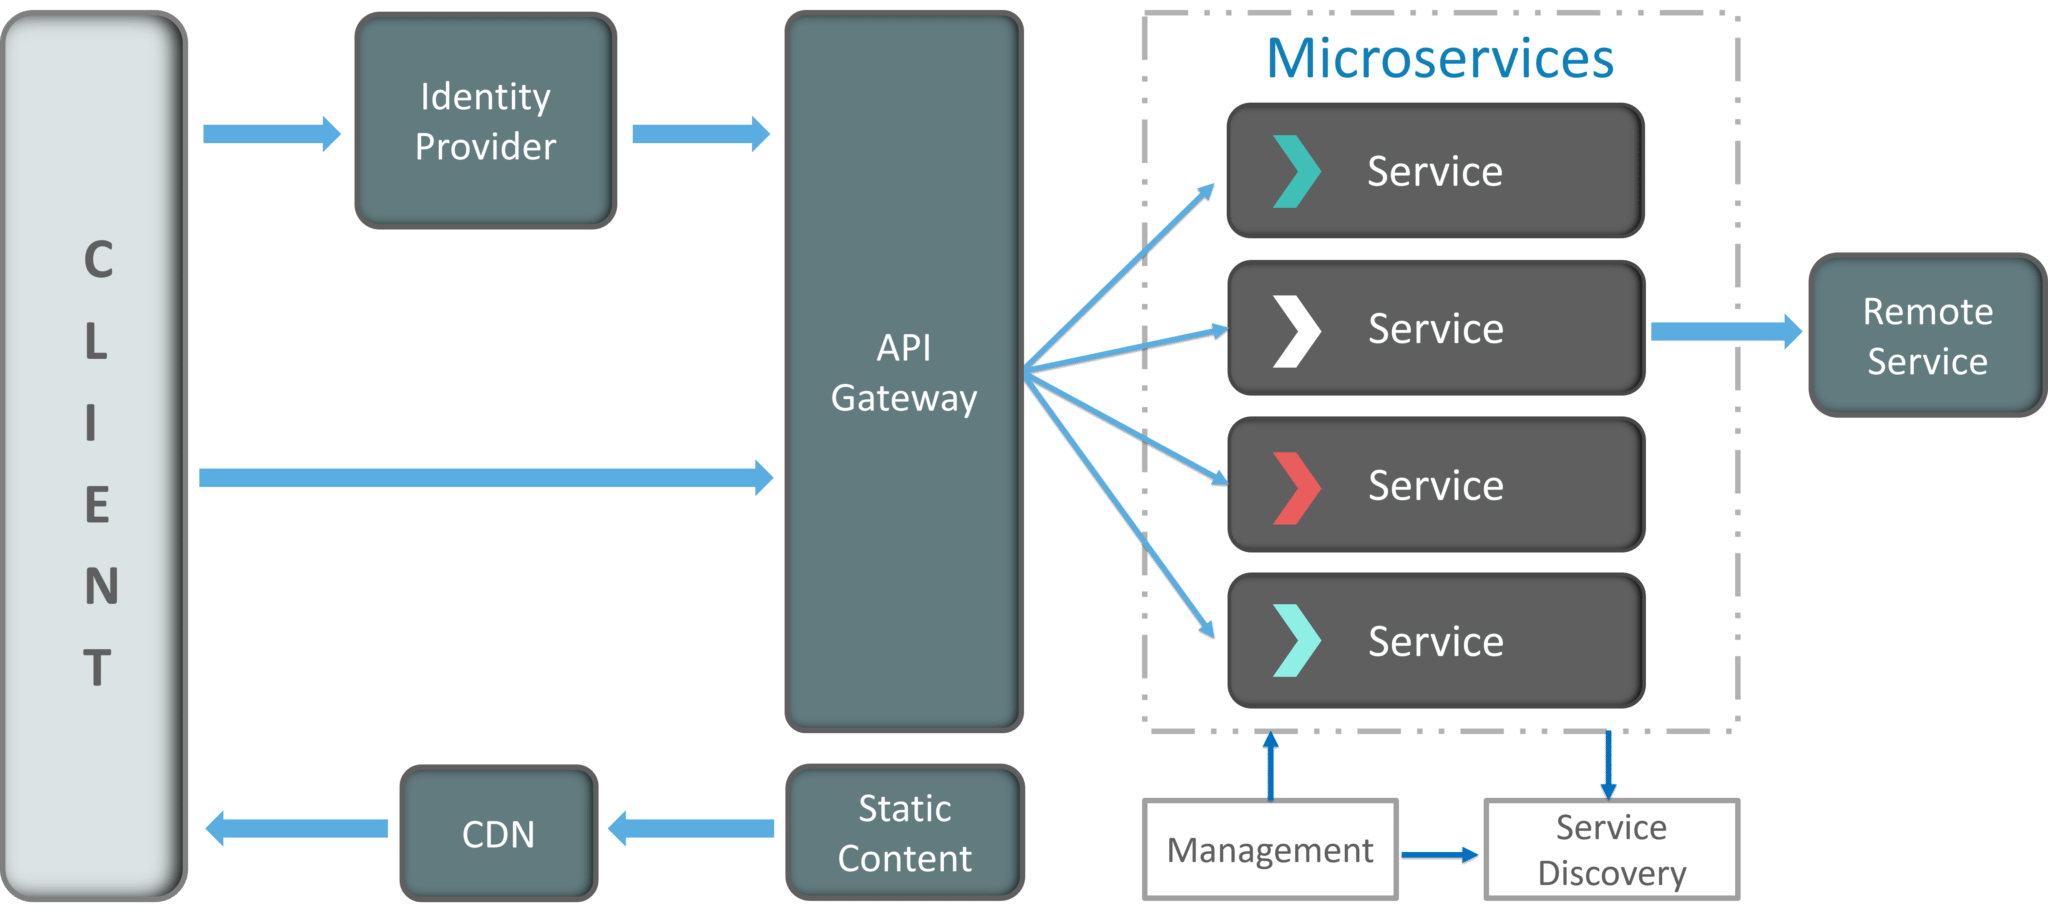 Micro Services Architecture | Microservice Architecture Learn Build And Deploy Applications